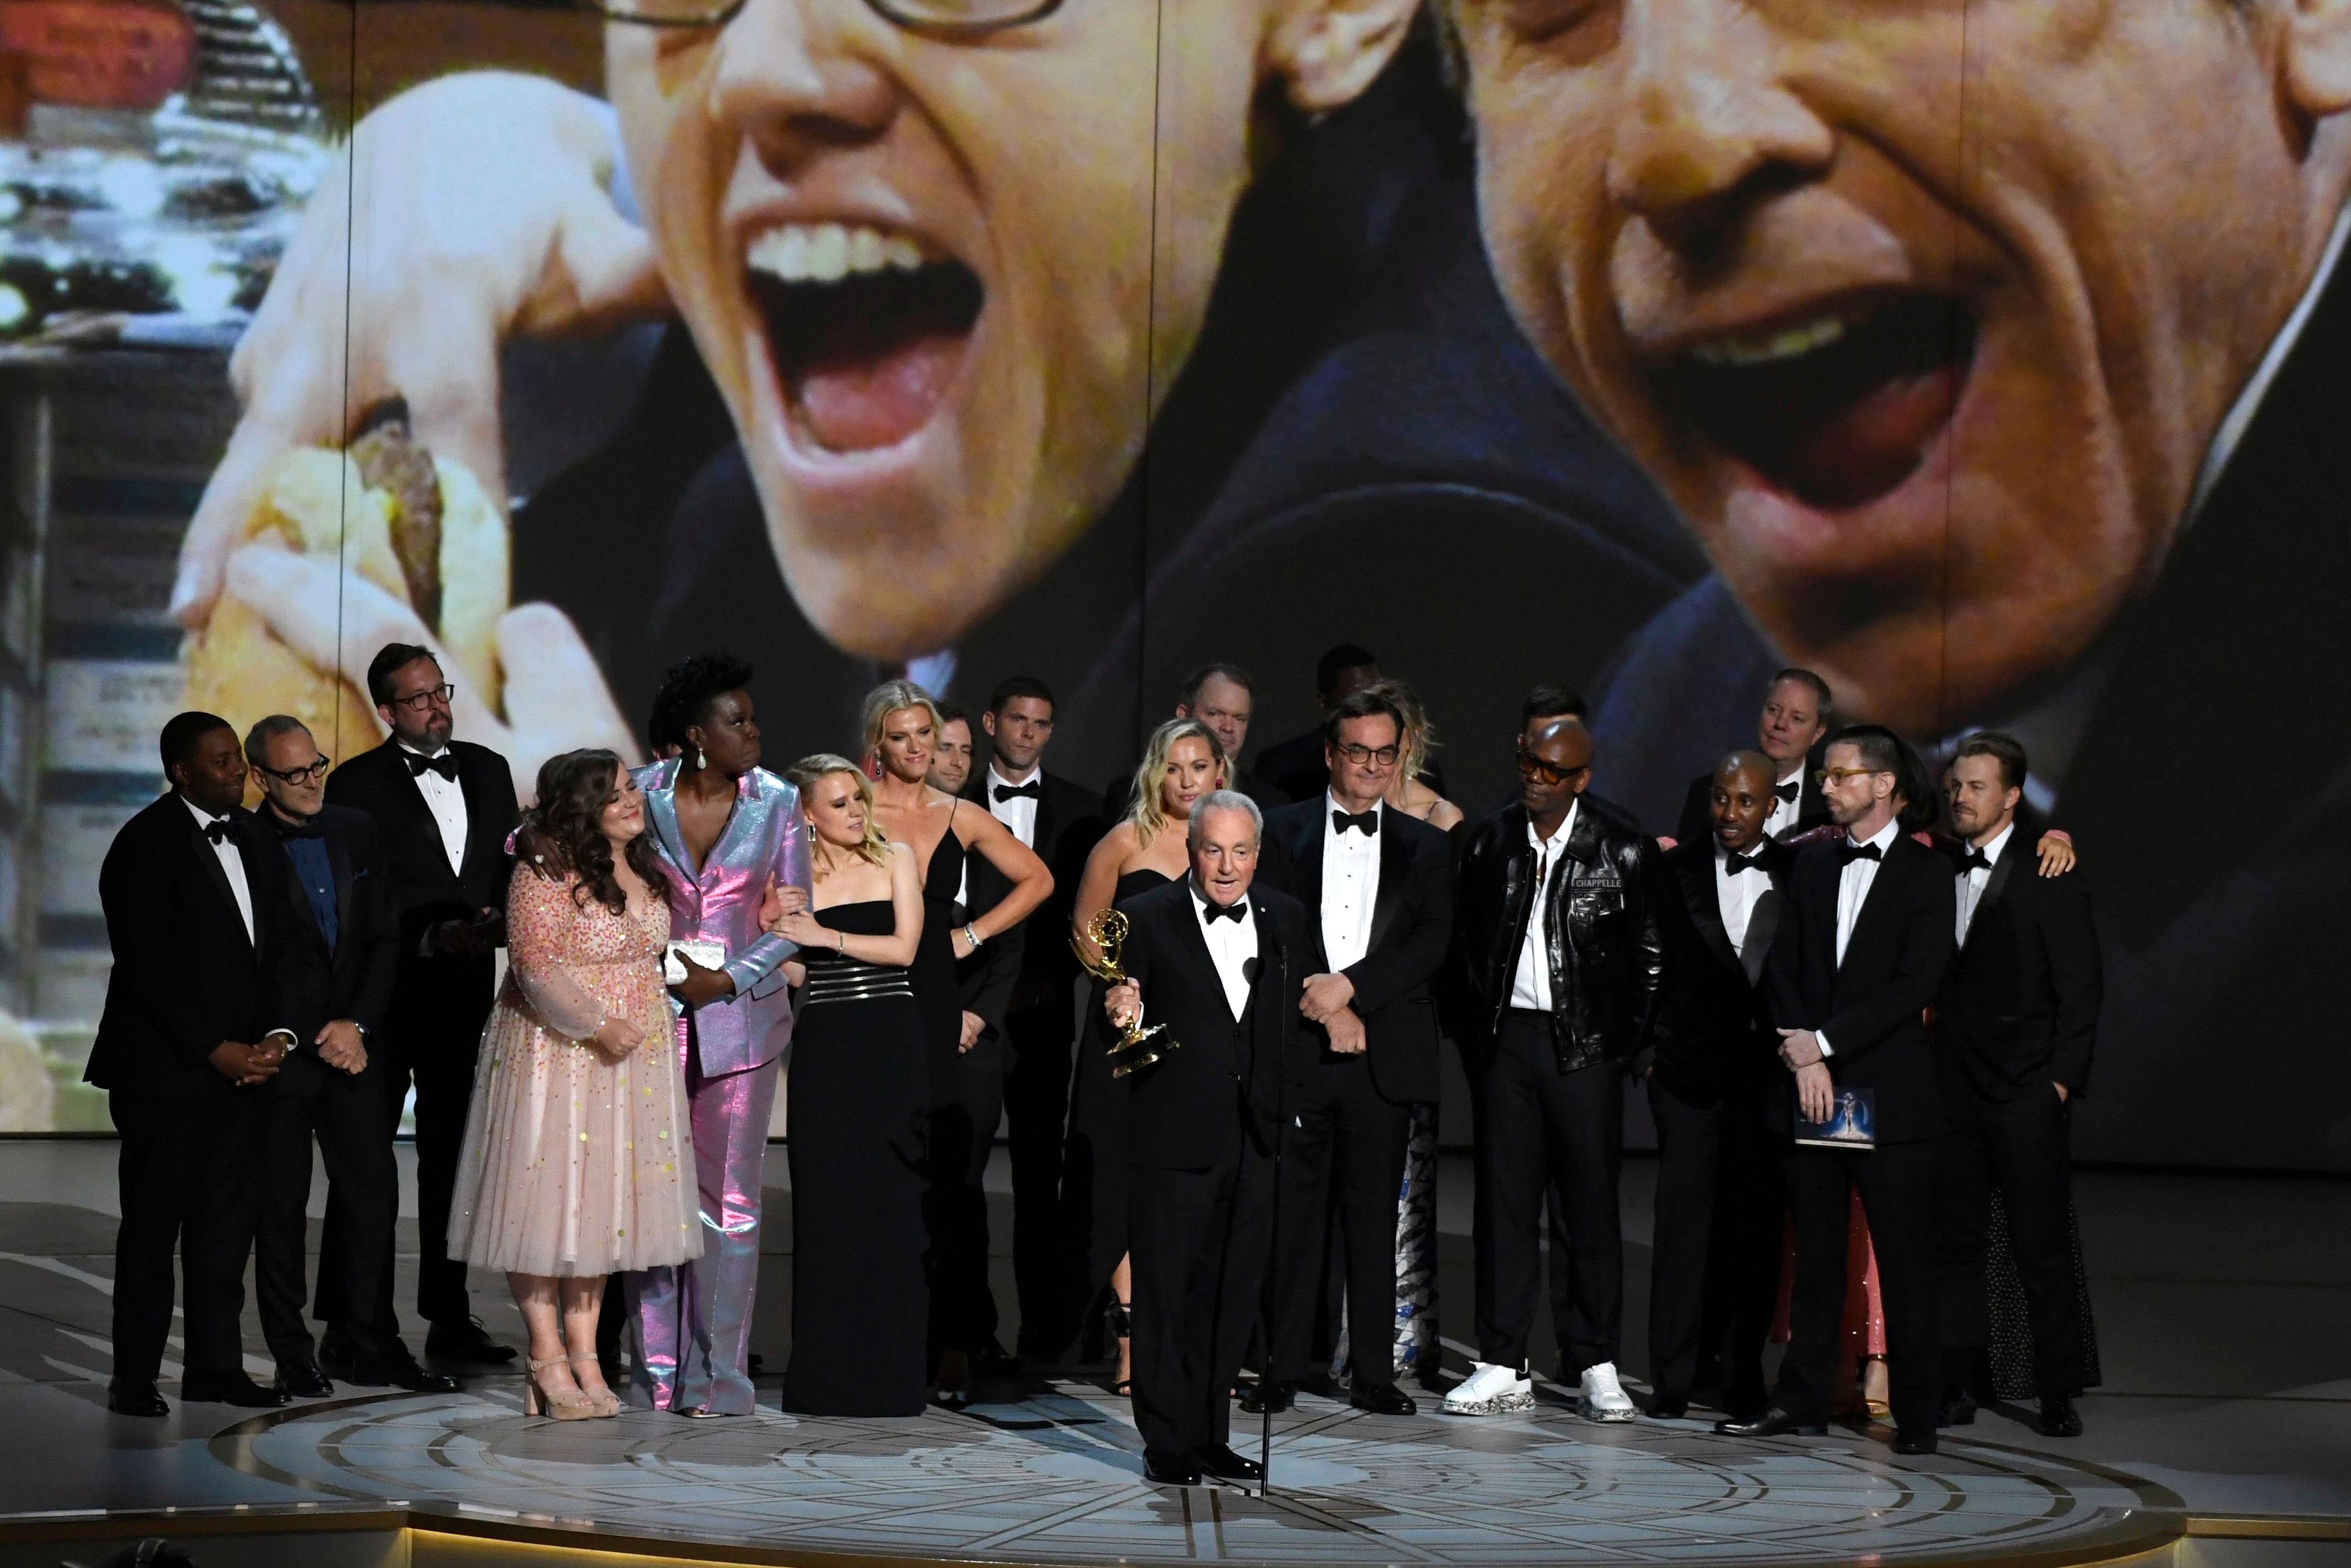 """Lorne Michaels, center, and the cast and crew from """"Saturday Night Live"""" accept the award for outstanding variety sketch series at the 70th Primetime Emmy Awards, at the Microsoft Theater in Los Angeles2018 Primetime Emmy Awards - Show, Los Angeles, USA - 17 Sep 2018"""